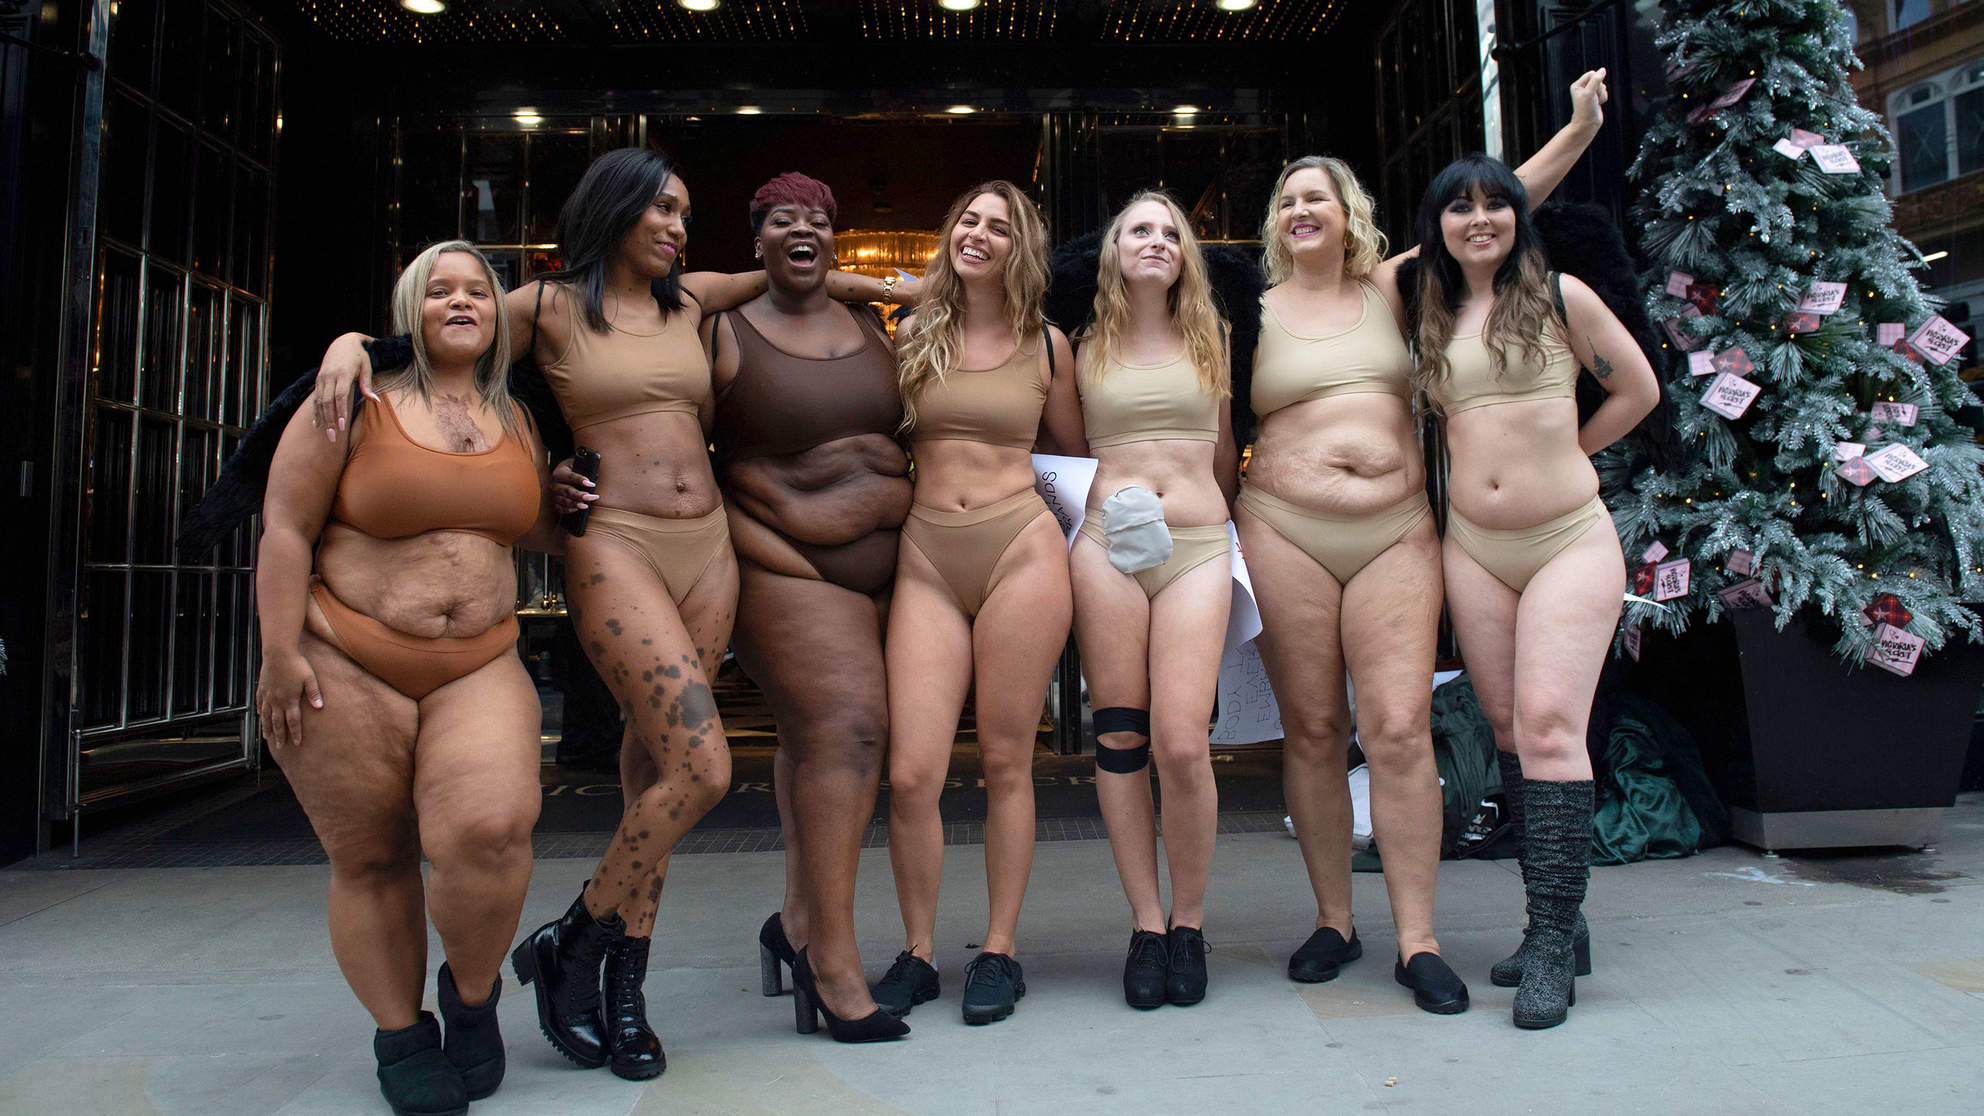 Women Strip Down to Their Underwear to Protest Outside Victoria's Secret Store in London